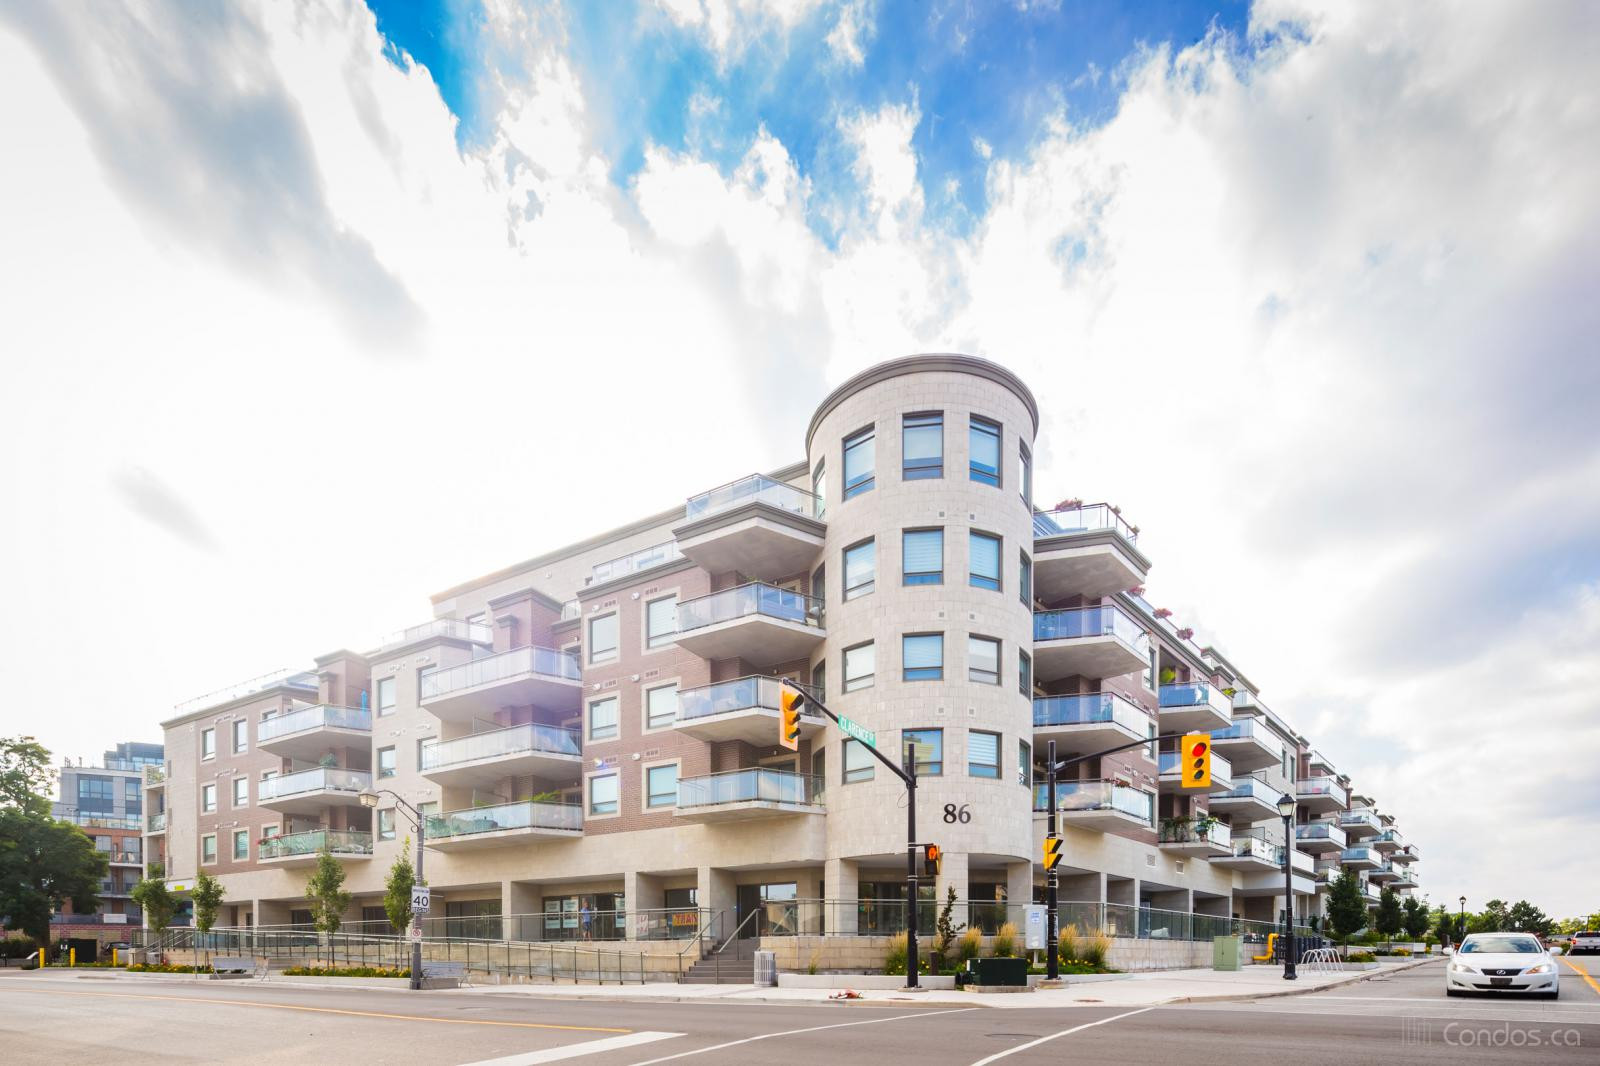 The Clarence at 86 Woodbridge Ave, Vaughan 1